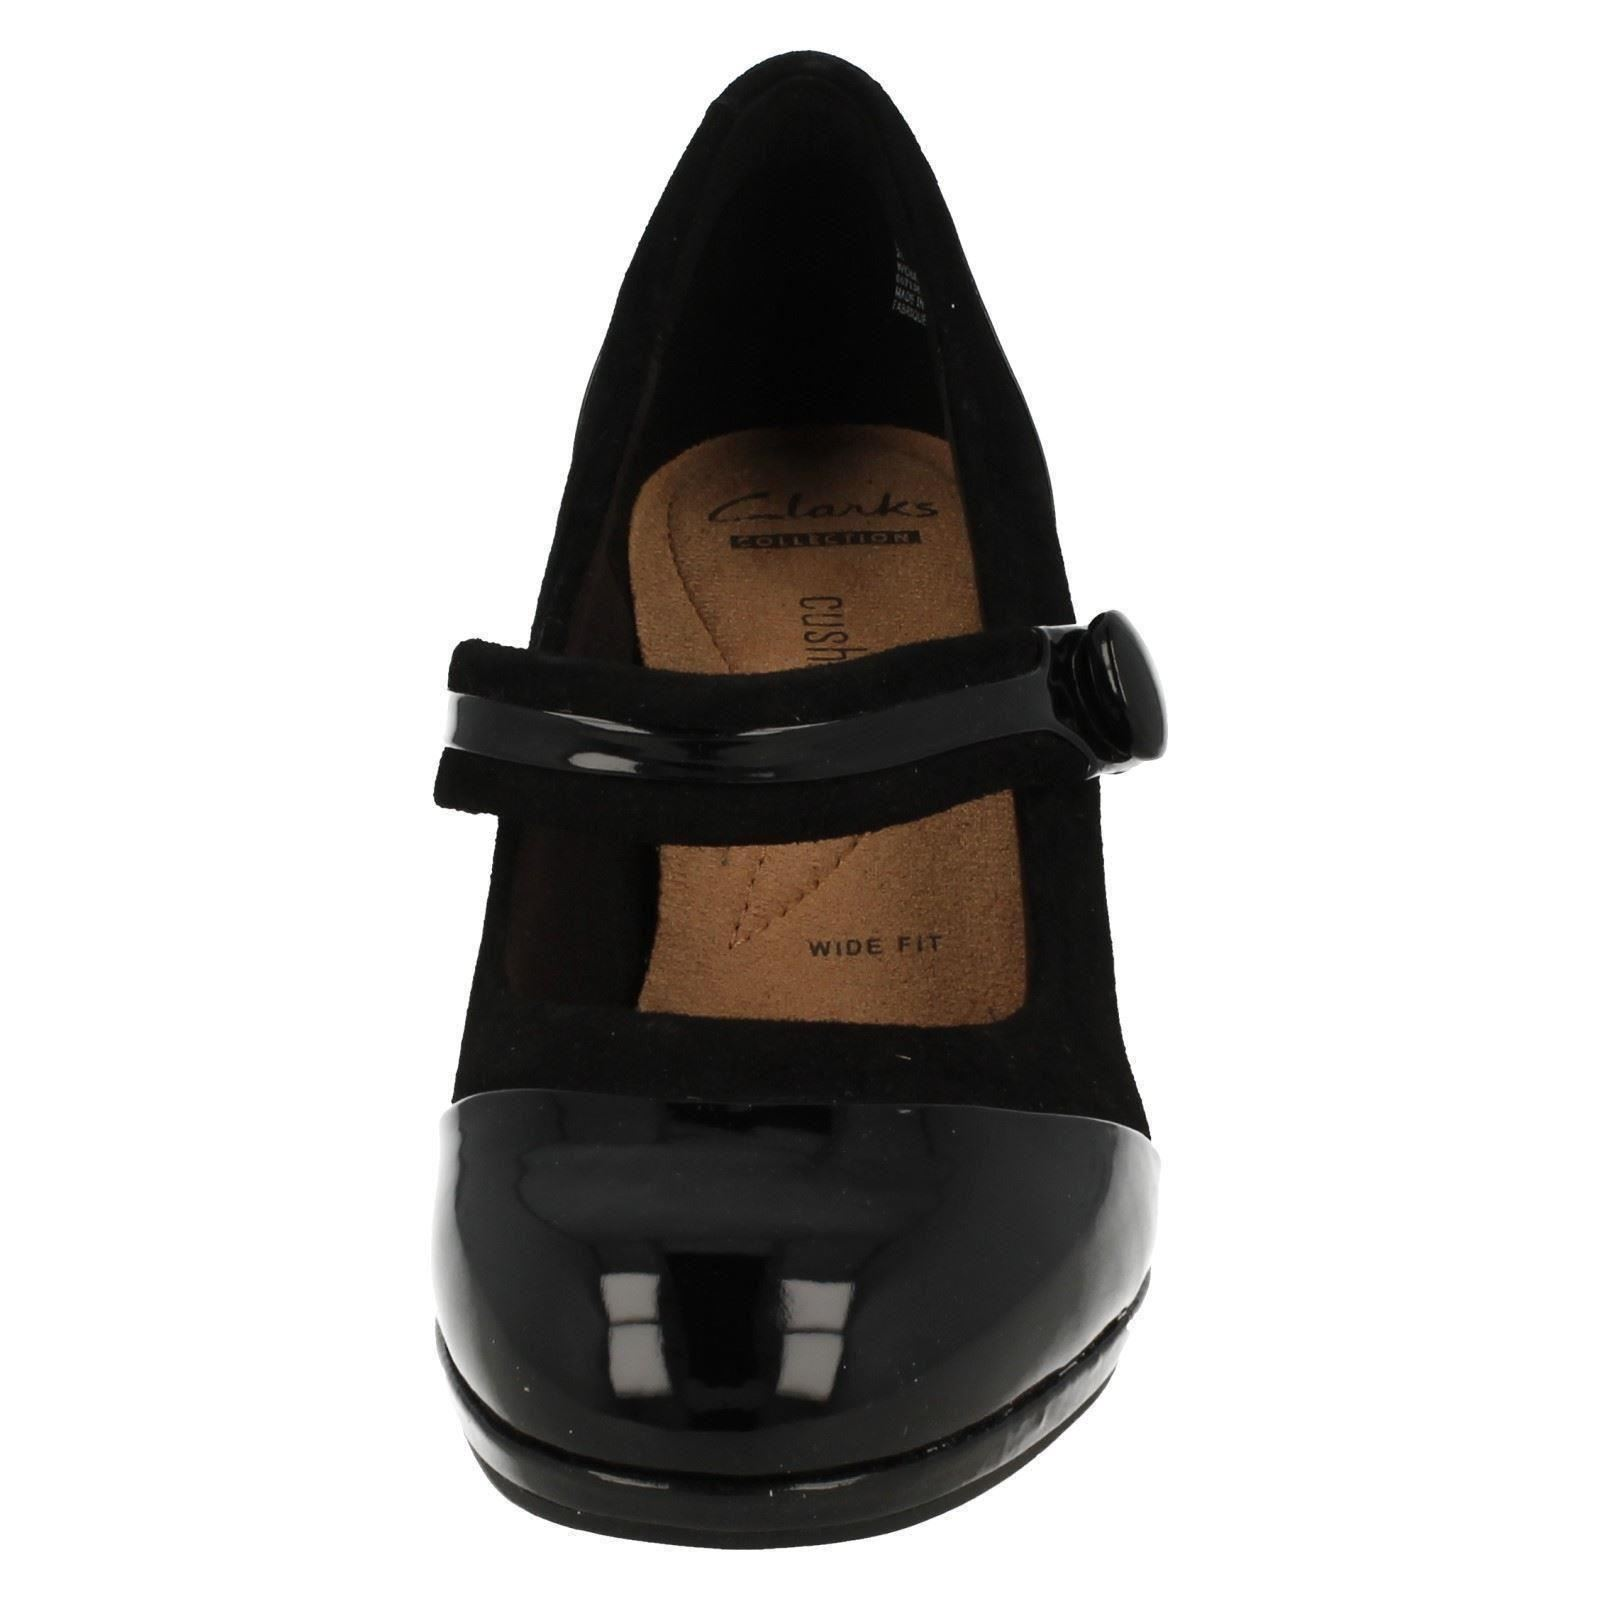 clarks leather patent leather shoes